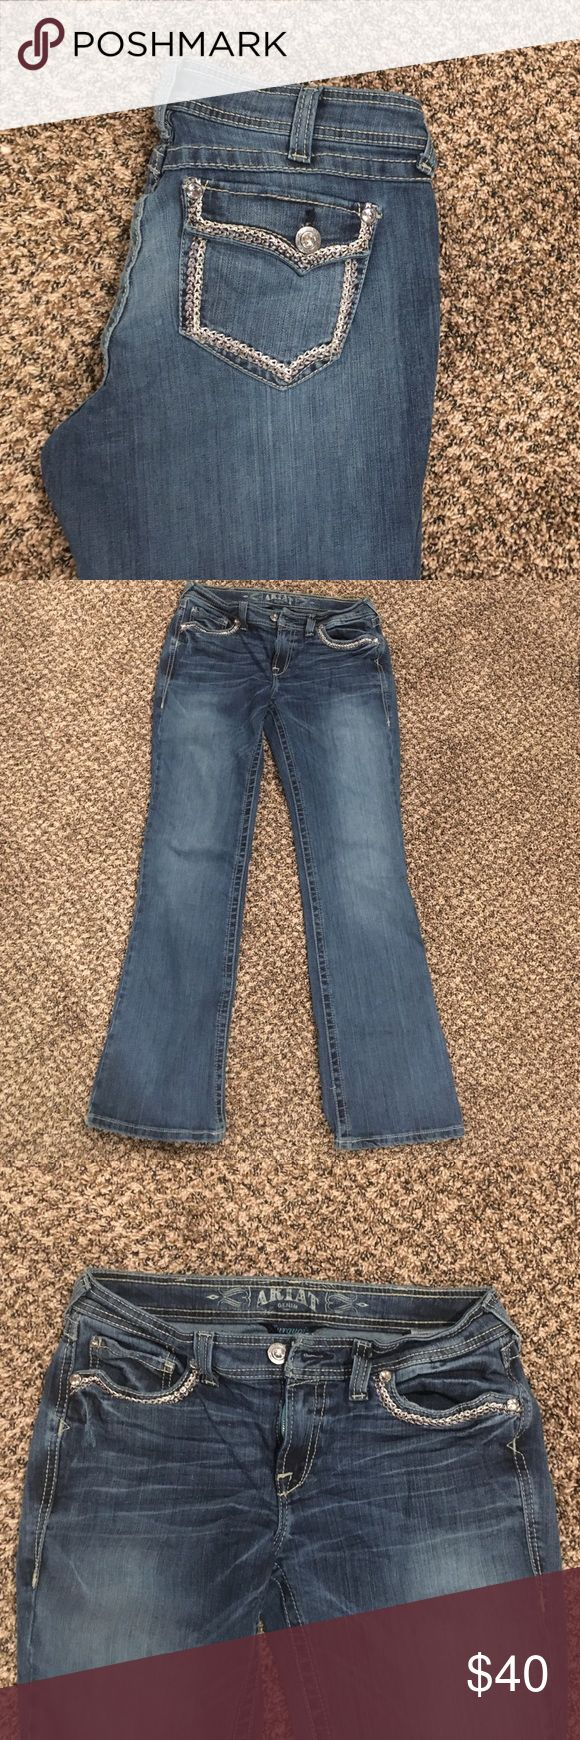 Size 30 Ariat Turquoise Jeans Worn once! Super cute Silver stitching Ariat Jeans Ariat Jeans Boot Cut